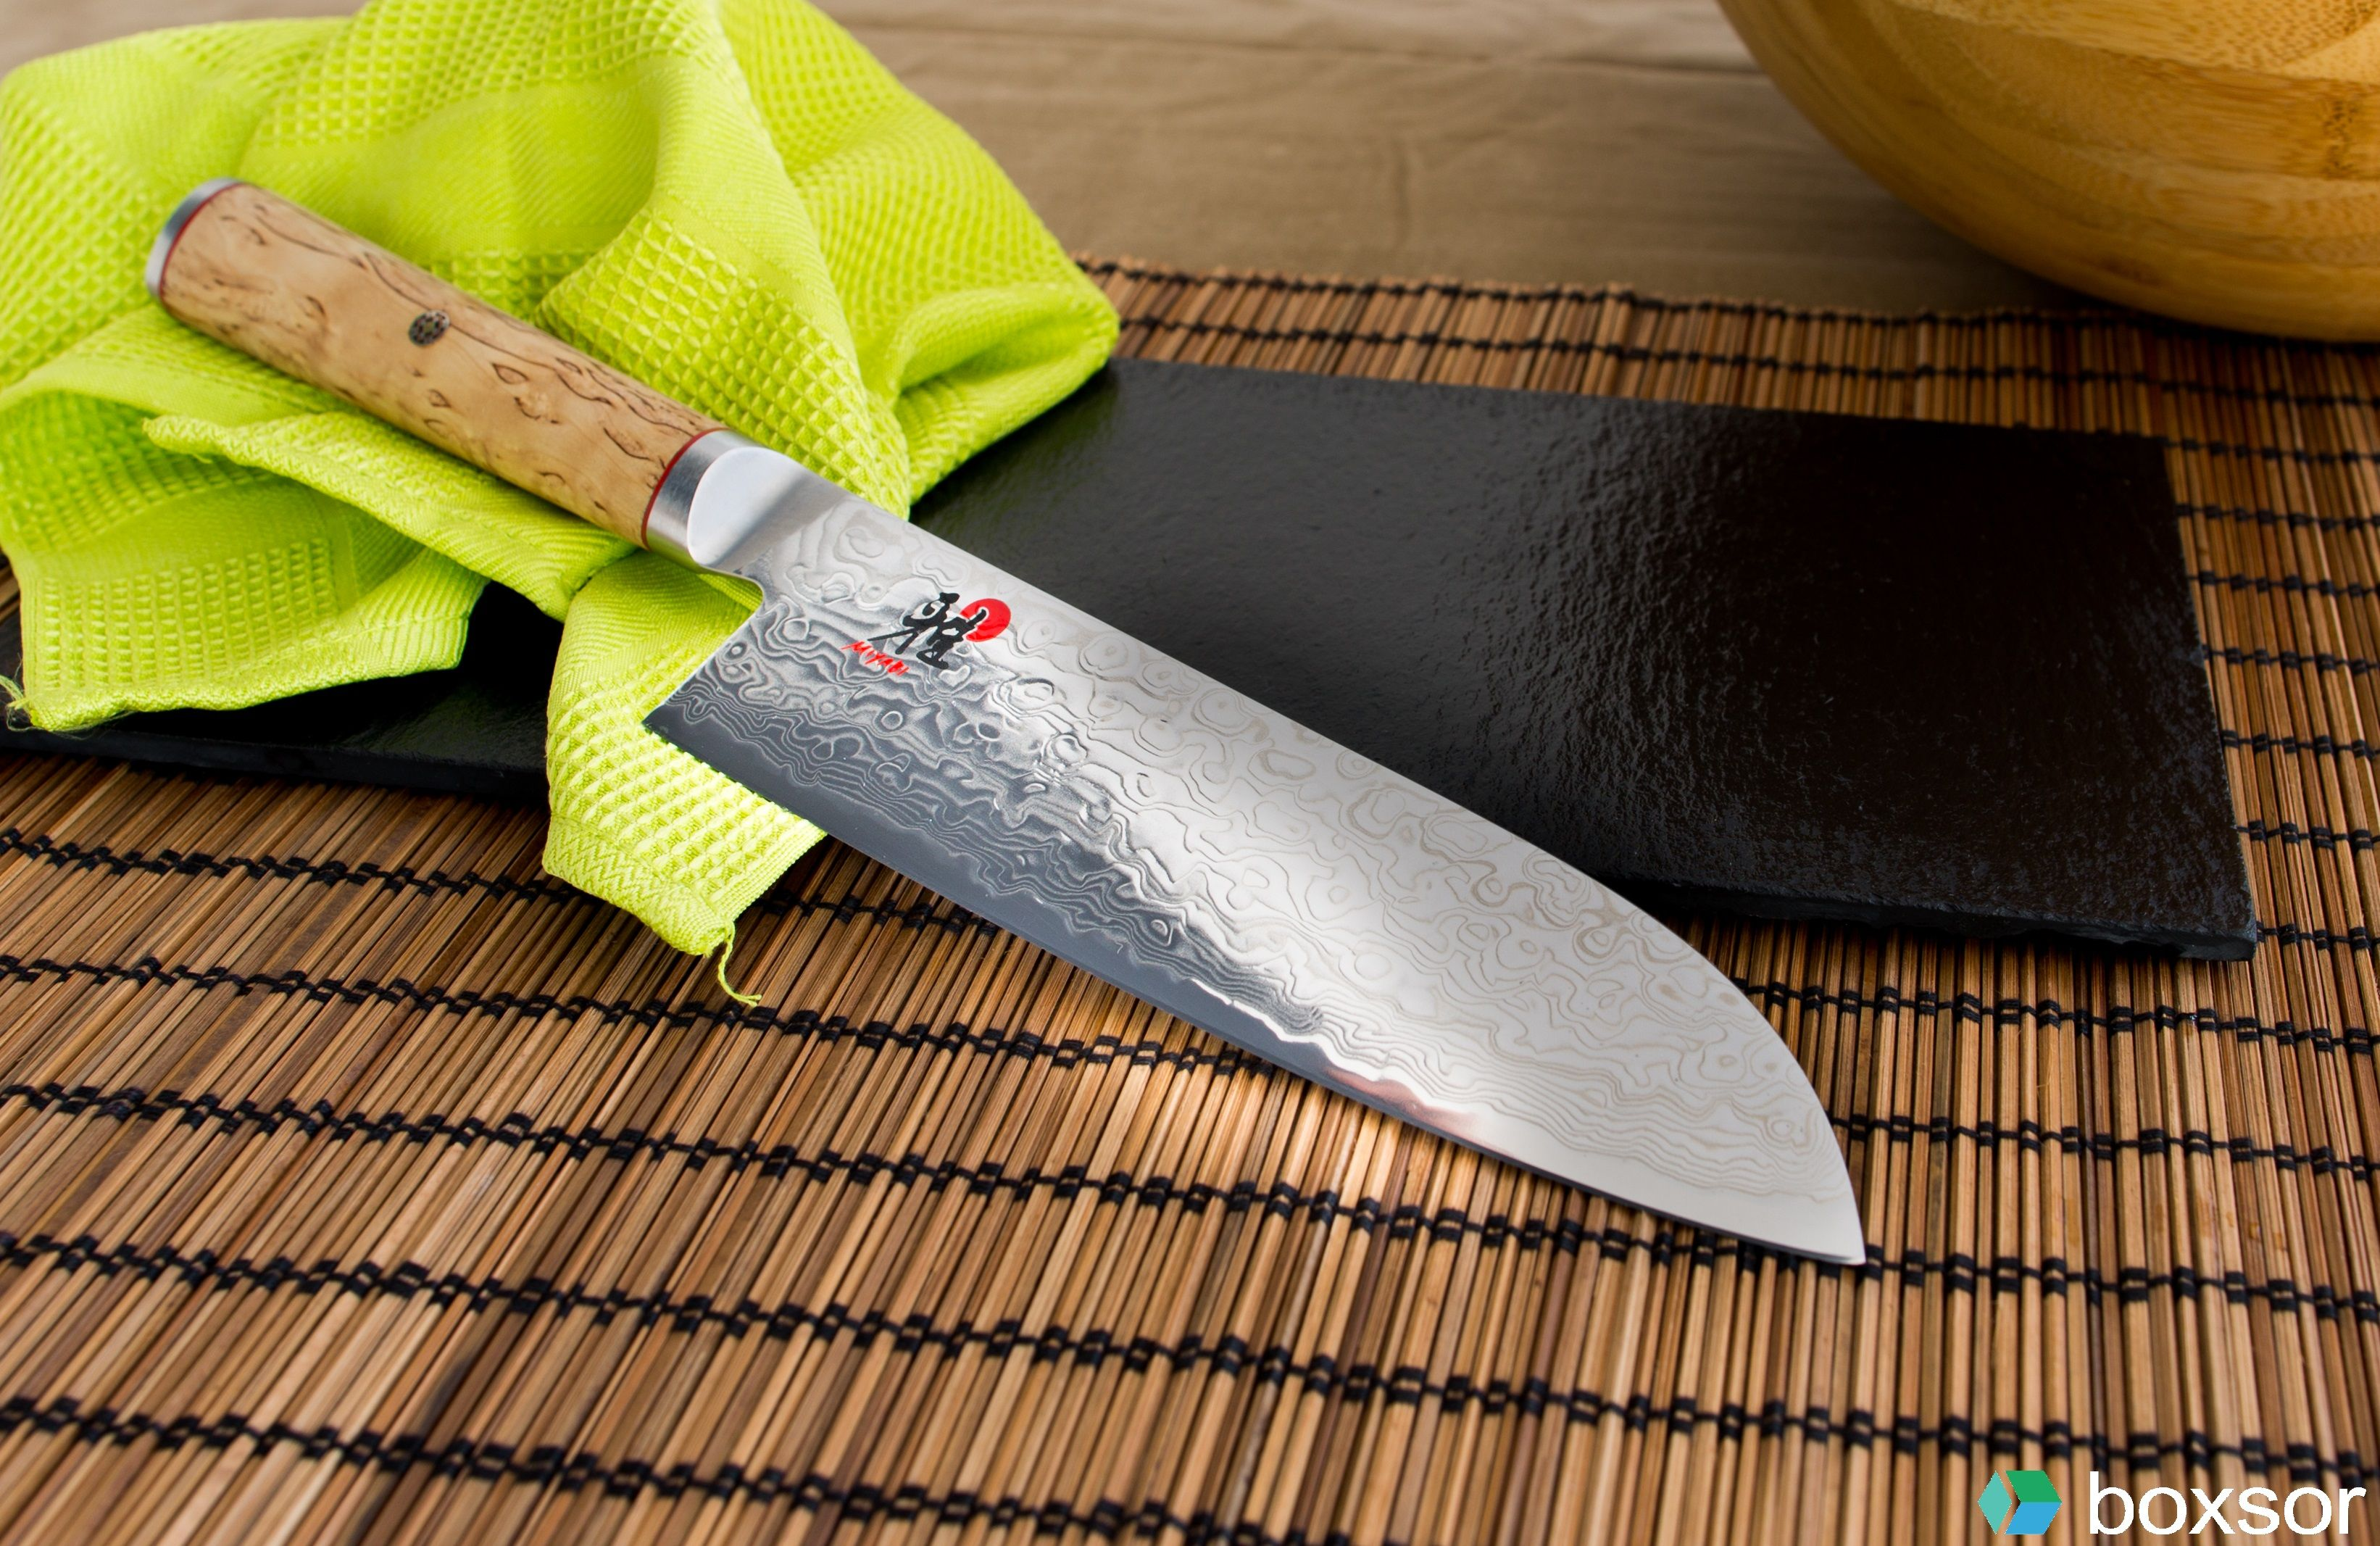 miyabi santoku mcd known for its versatility the three virtue knife can make easy work of meet fish and vegetables